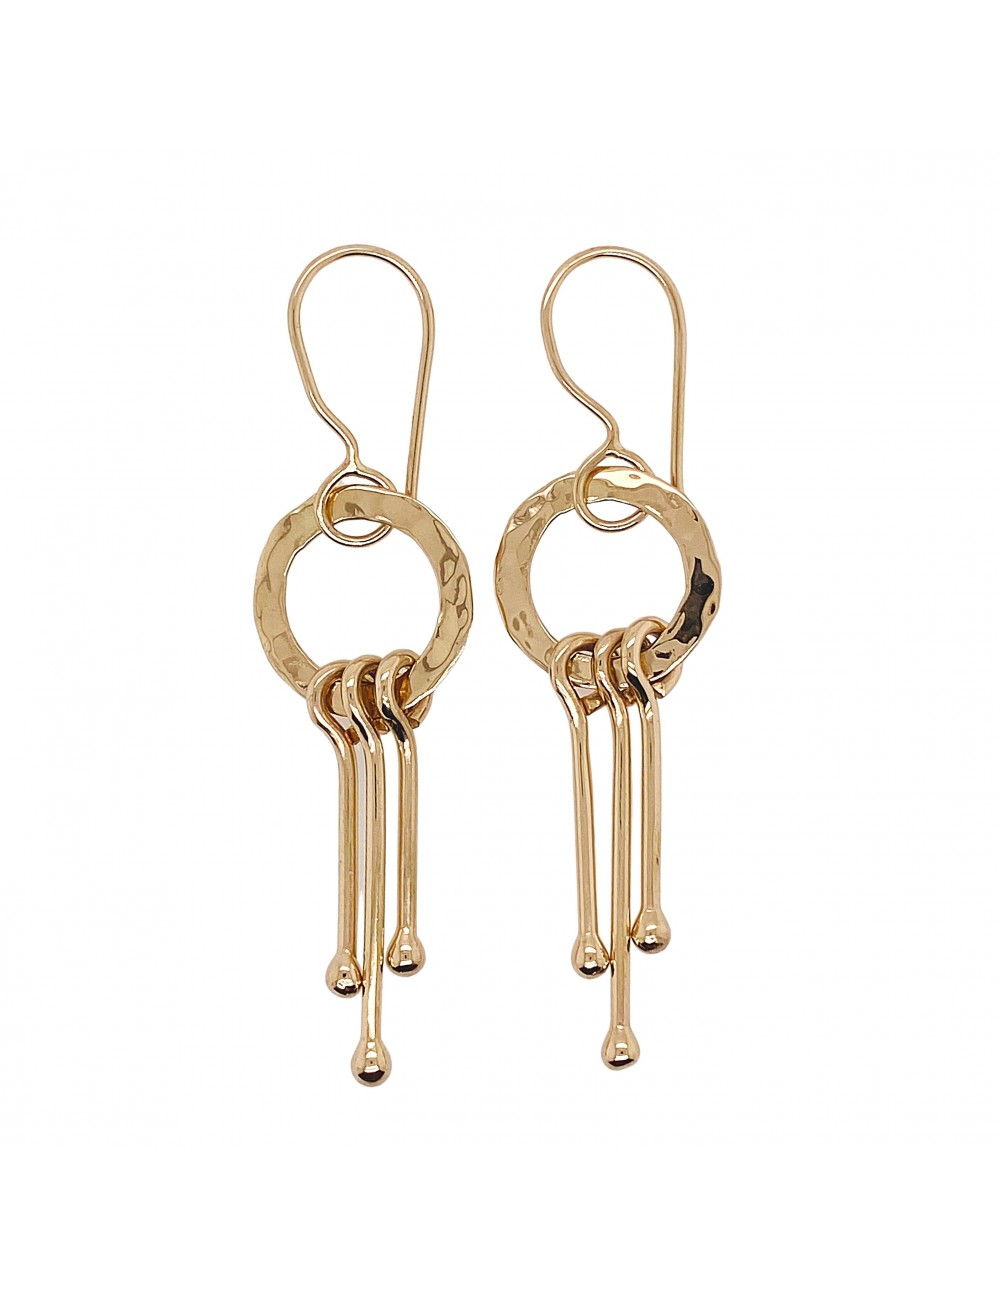 Ball and Link Earrings